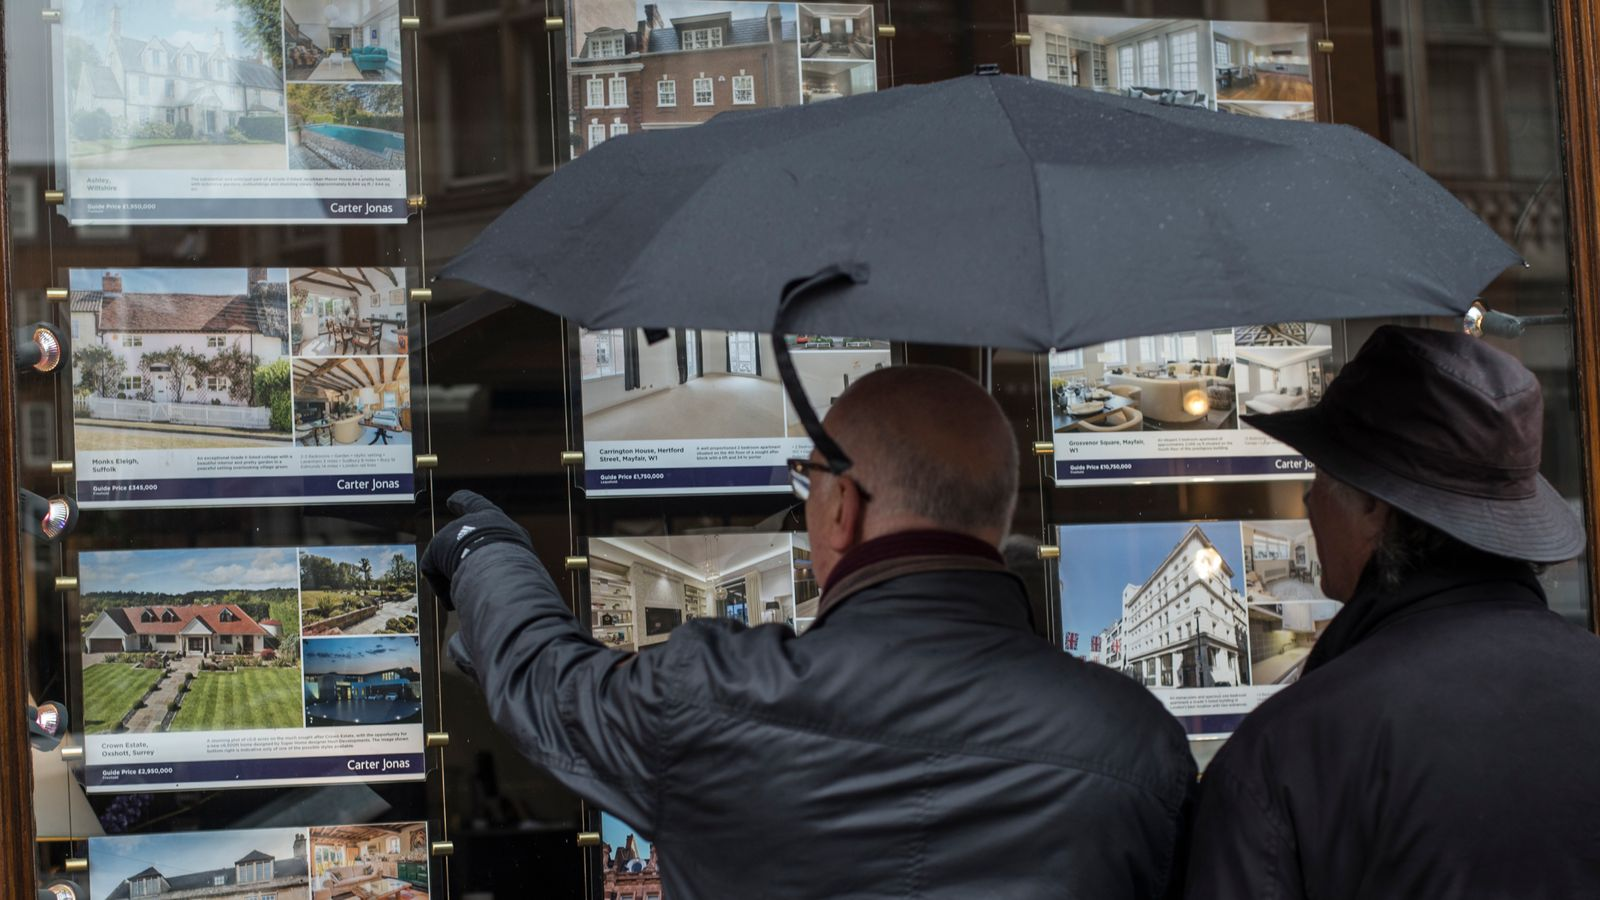 Weakest house price growth since 2012 ahead of October Brexit deadline - EpicNews